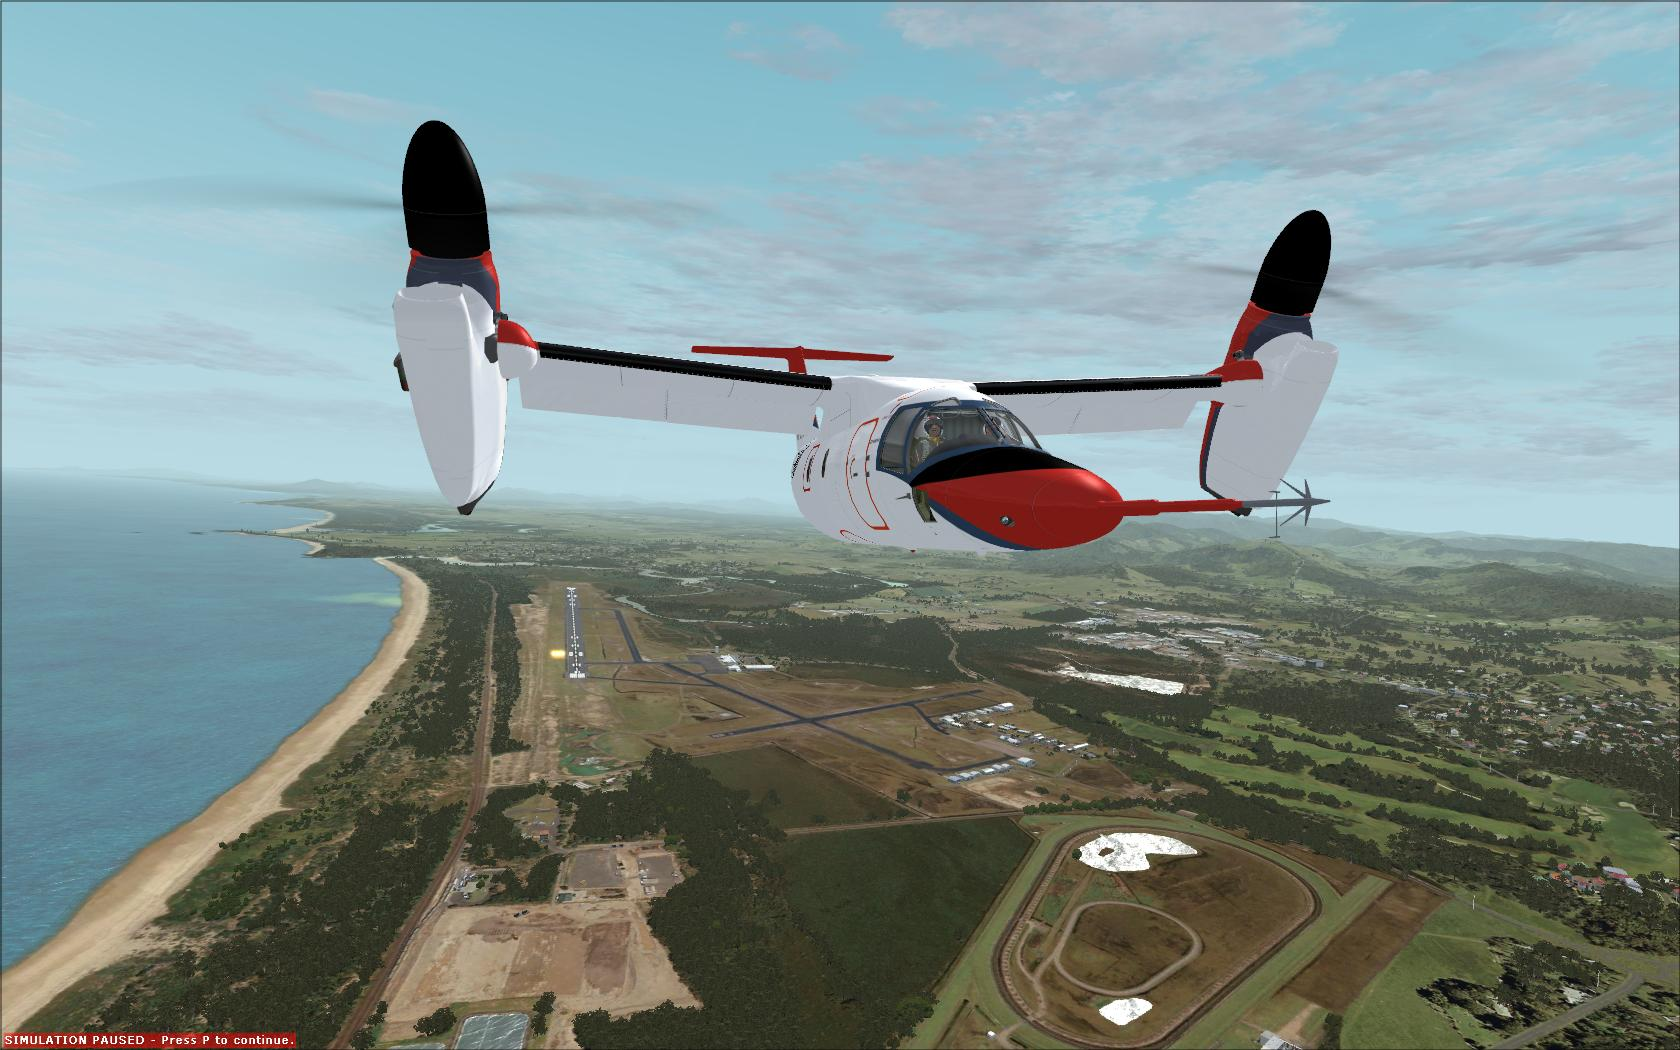 What do you think of my FSX wallpapers? - SimForums com Discussion